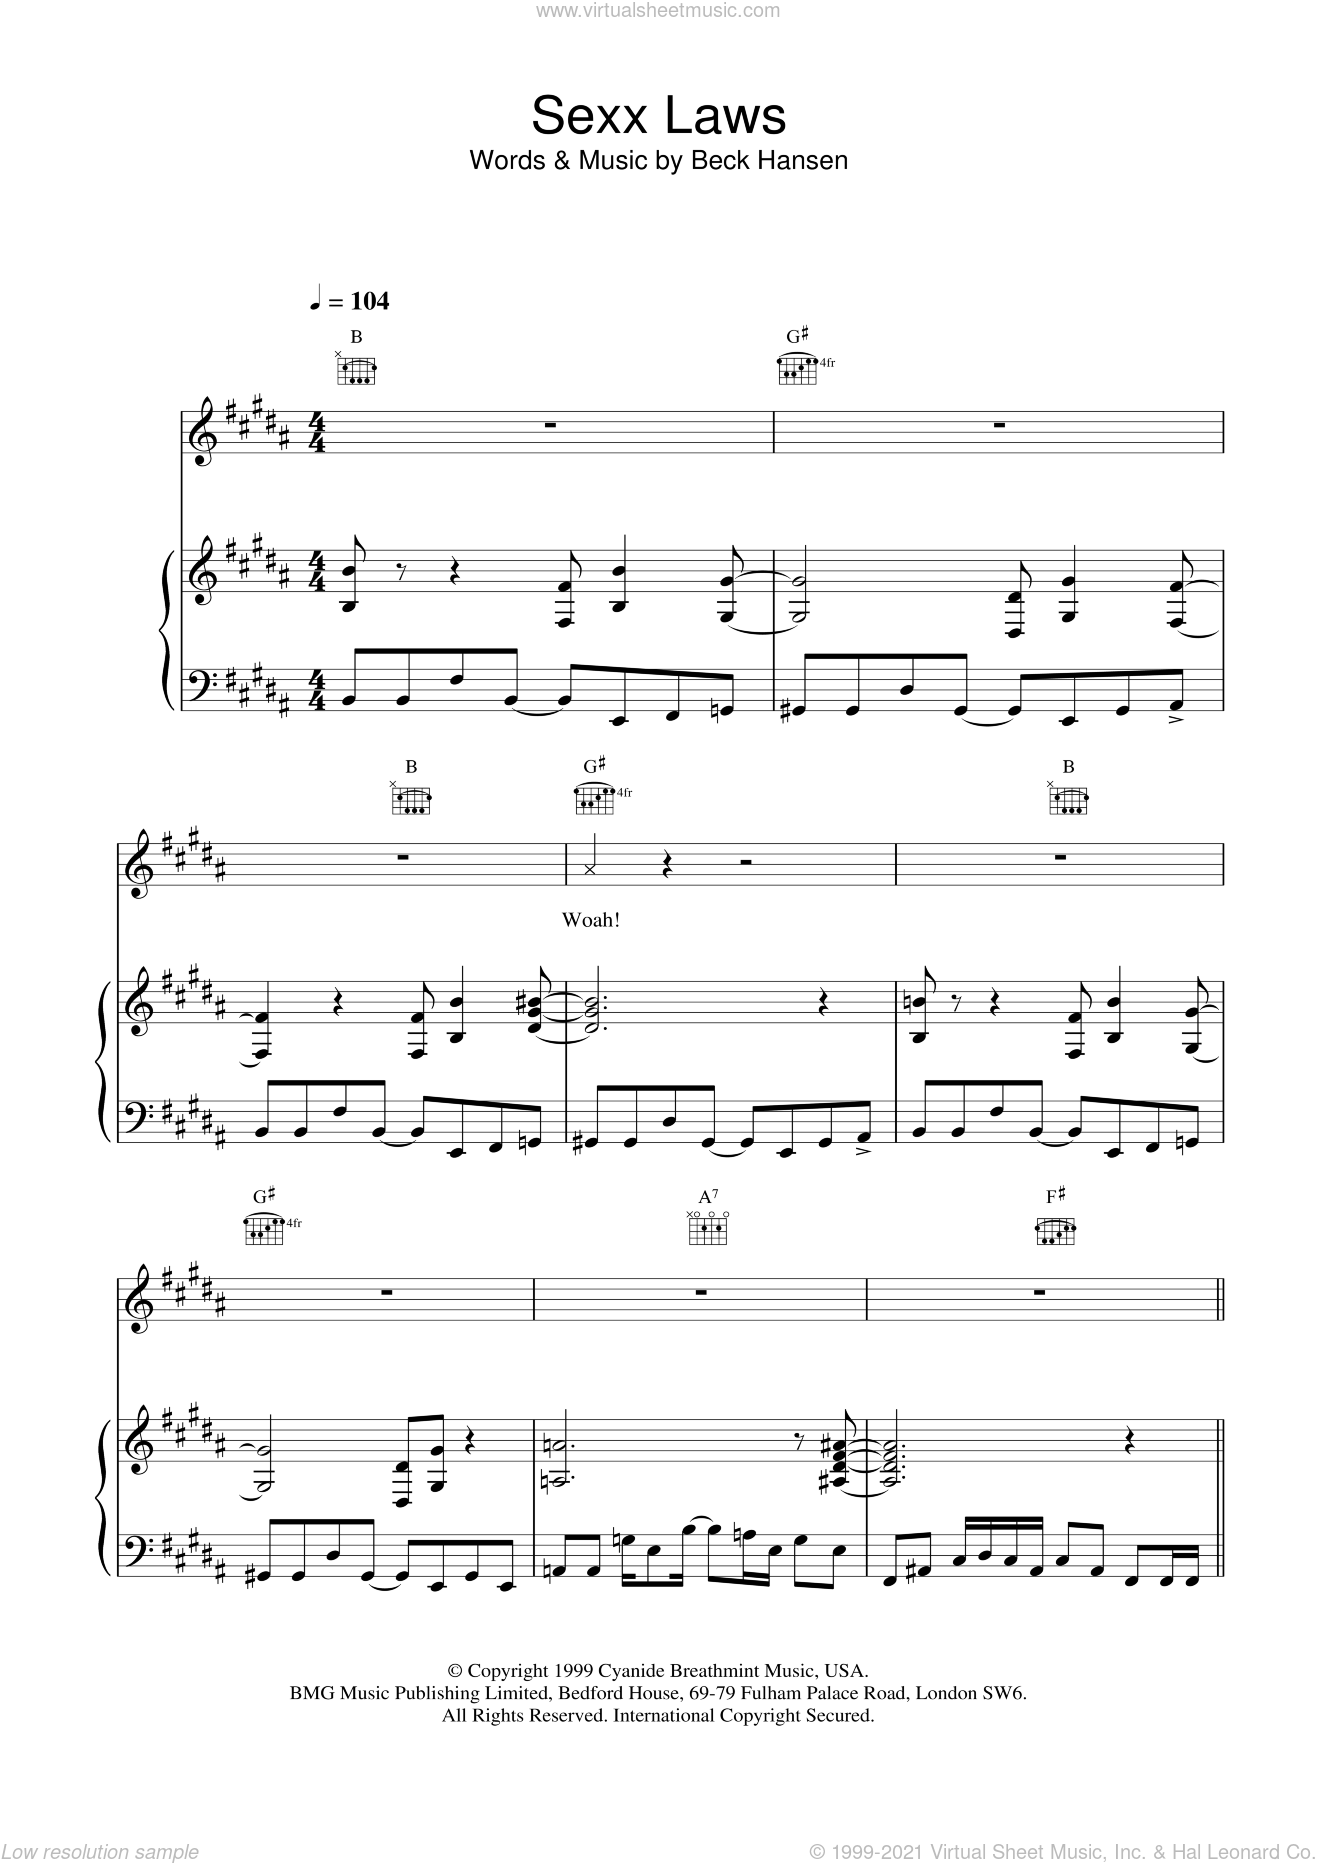 Sexx laws sheet music for voice, piano or guitar by Beck Hansen